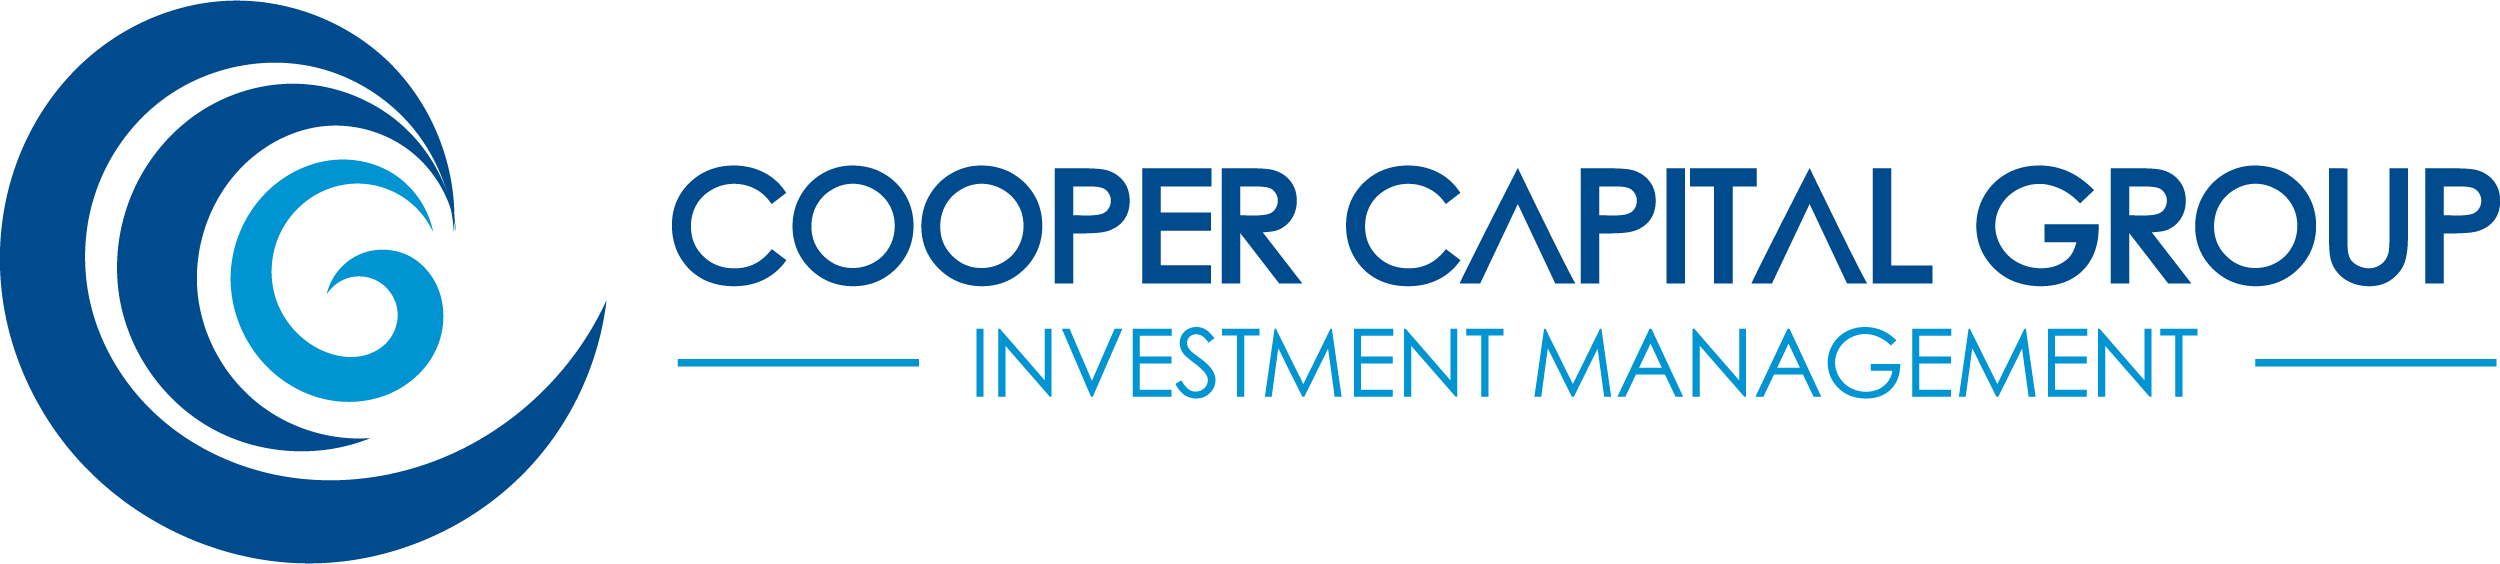 Logo for Cooper Capital Group